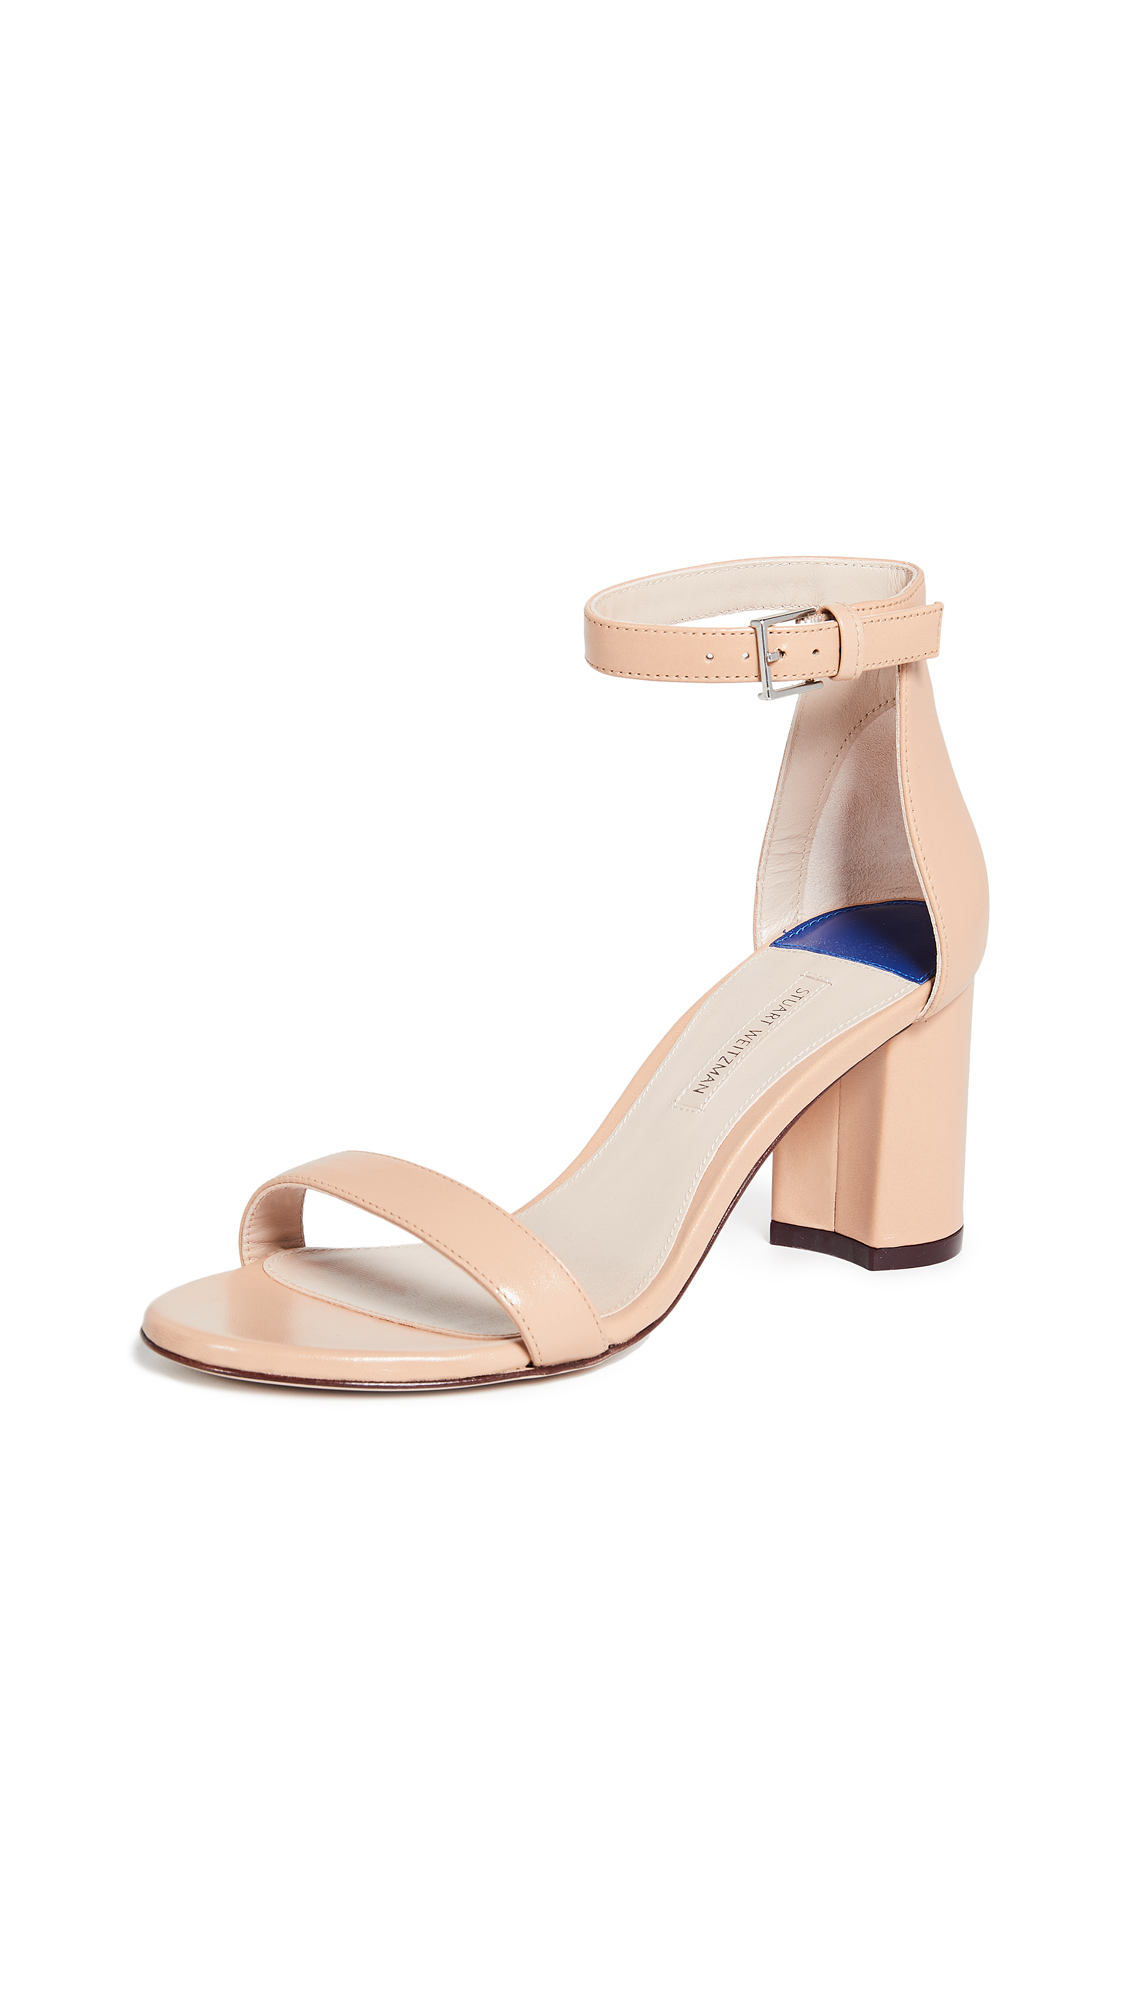 Stuart Weitzman Less Nudist 75mm Sandals - Bambina